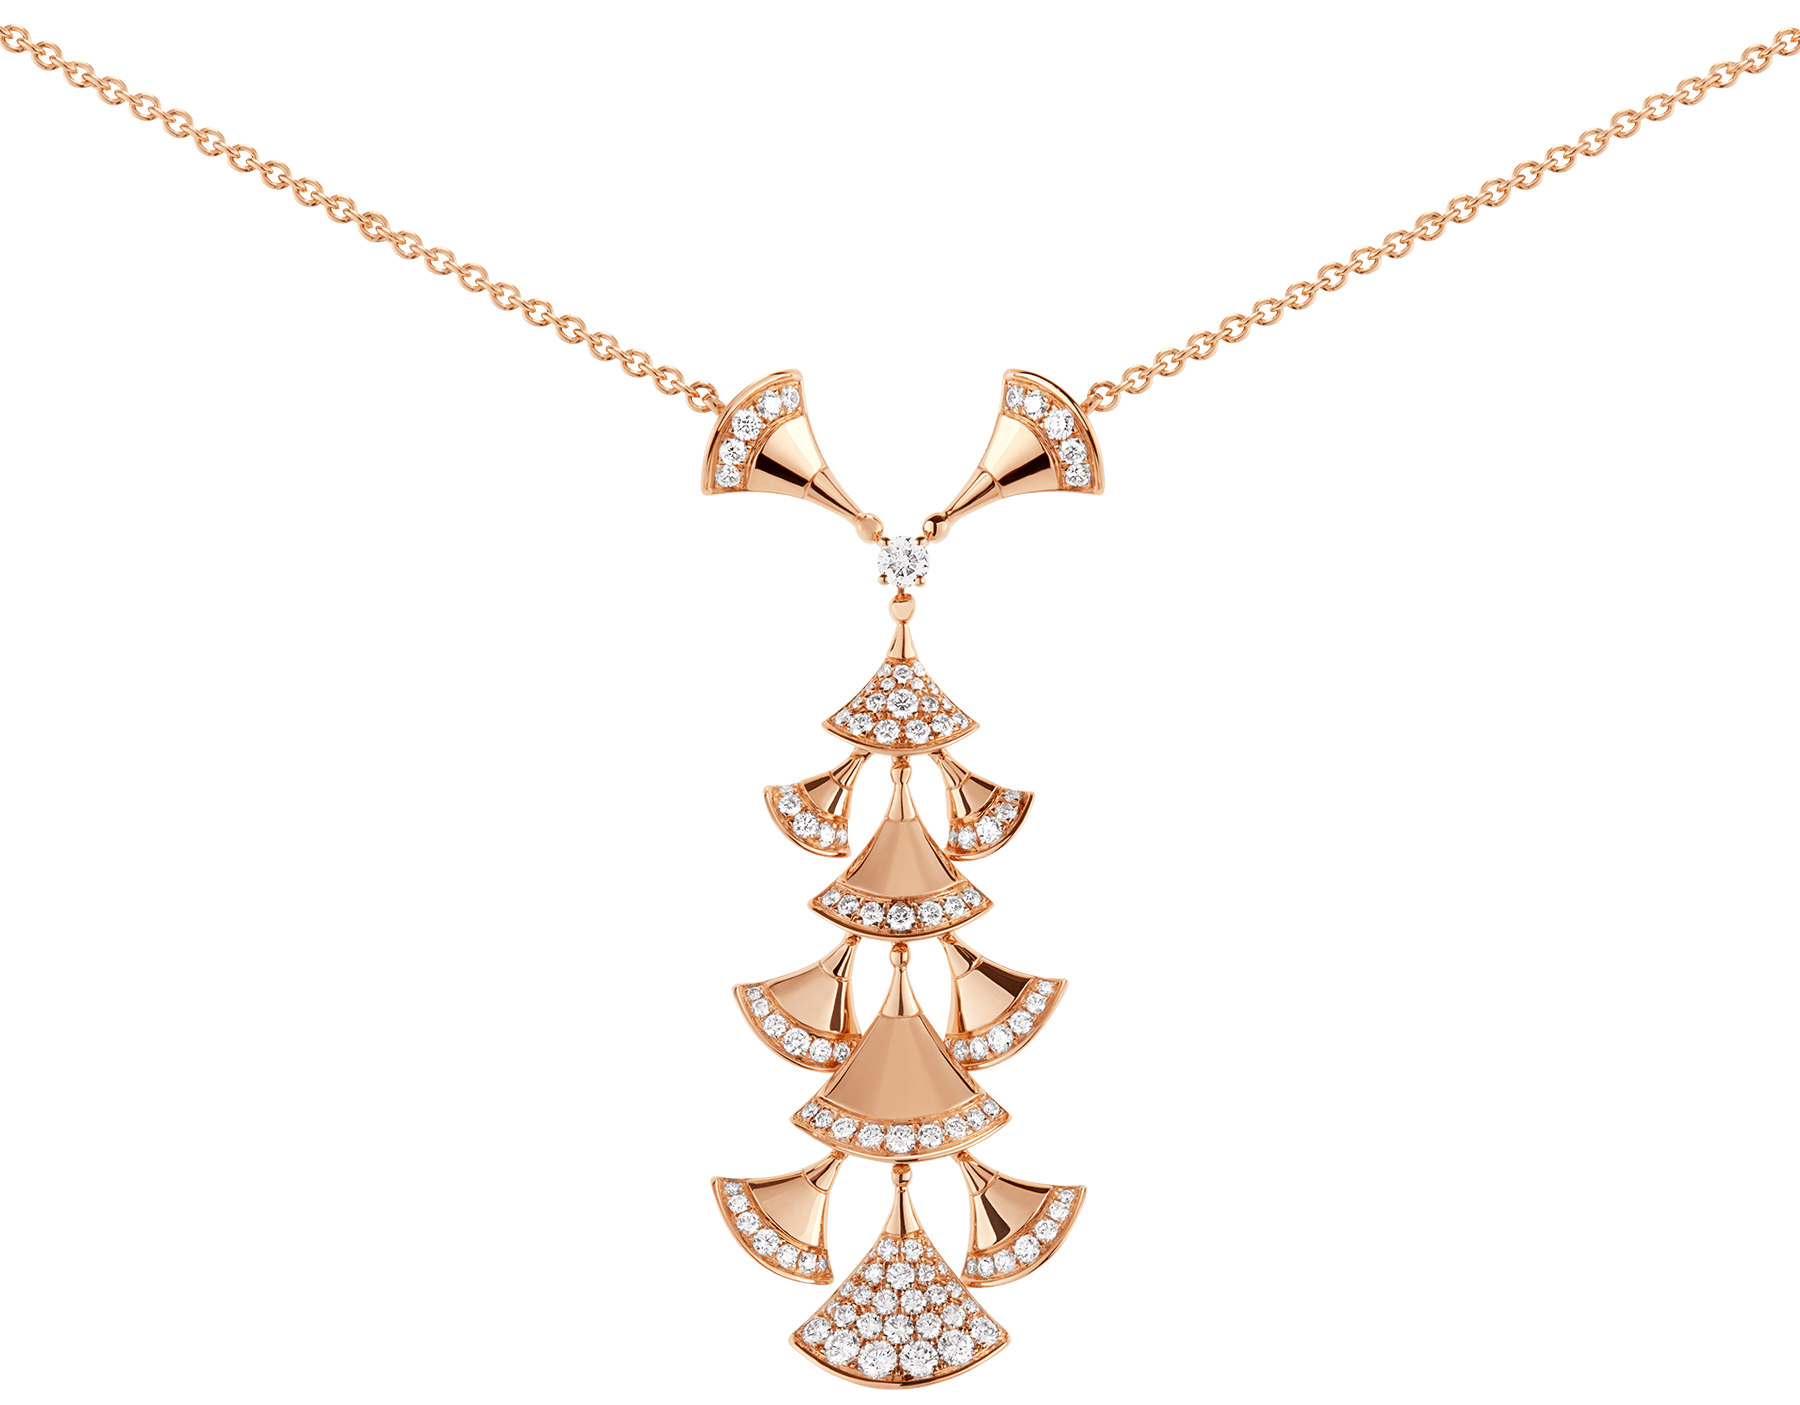 DIVAS' DREAM necklace in 18 kt rose gold set with diamonds and pavé diamonds. 352607 image 3